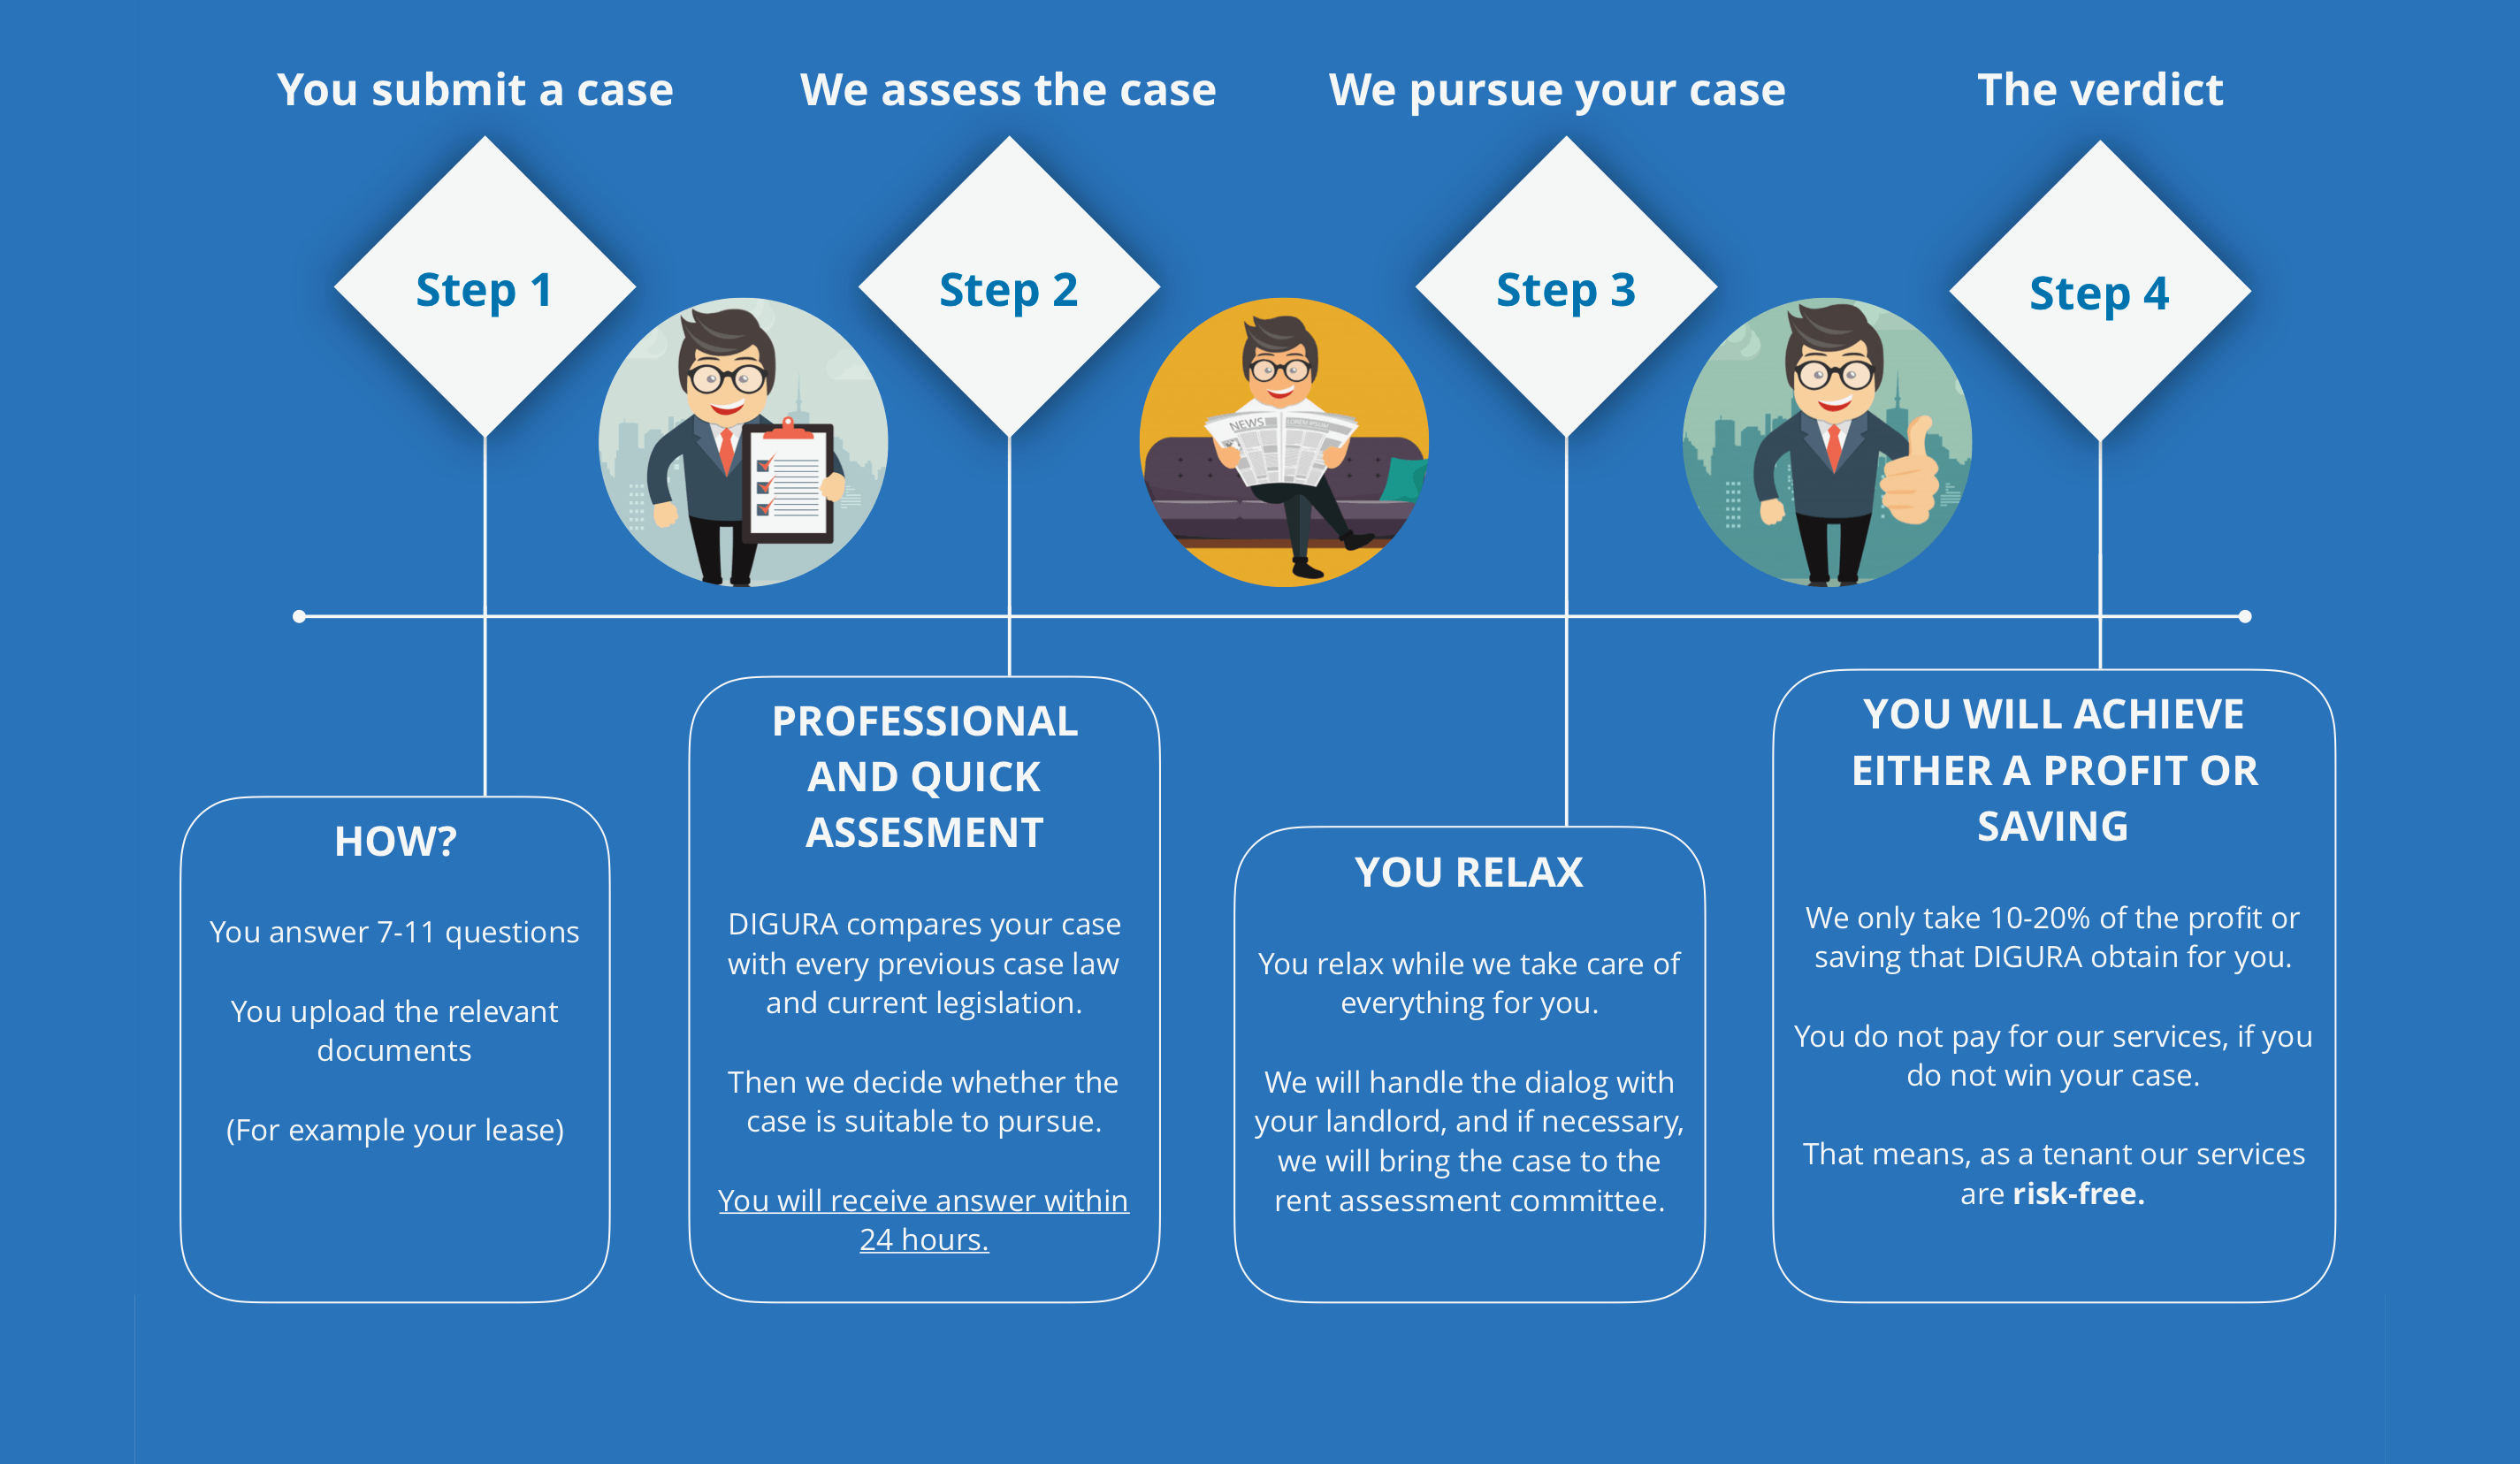 How your case is handled by DIGURA